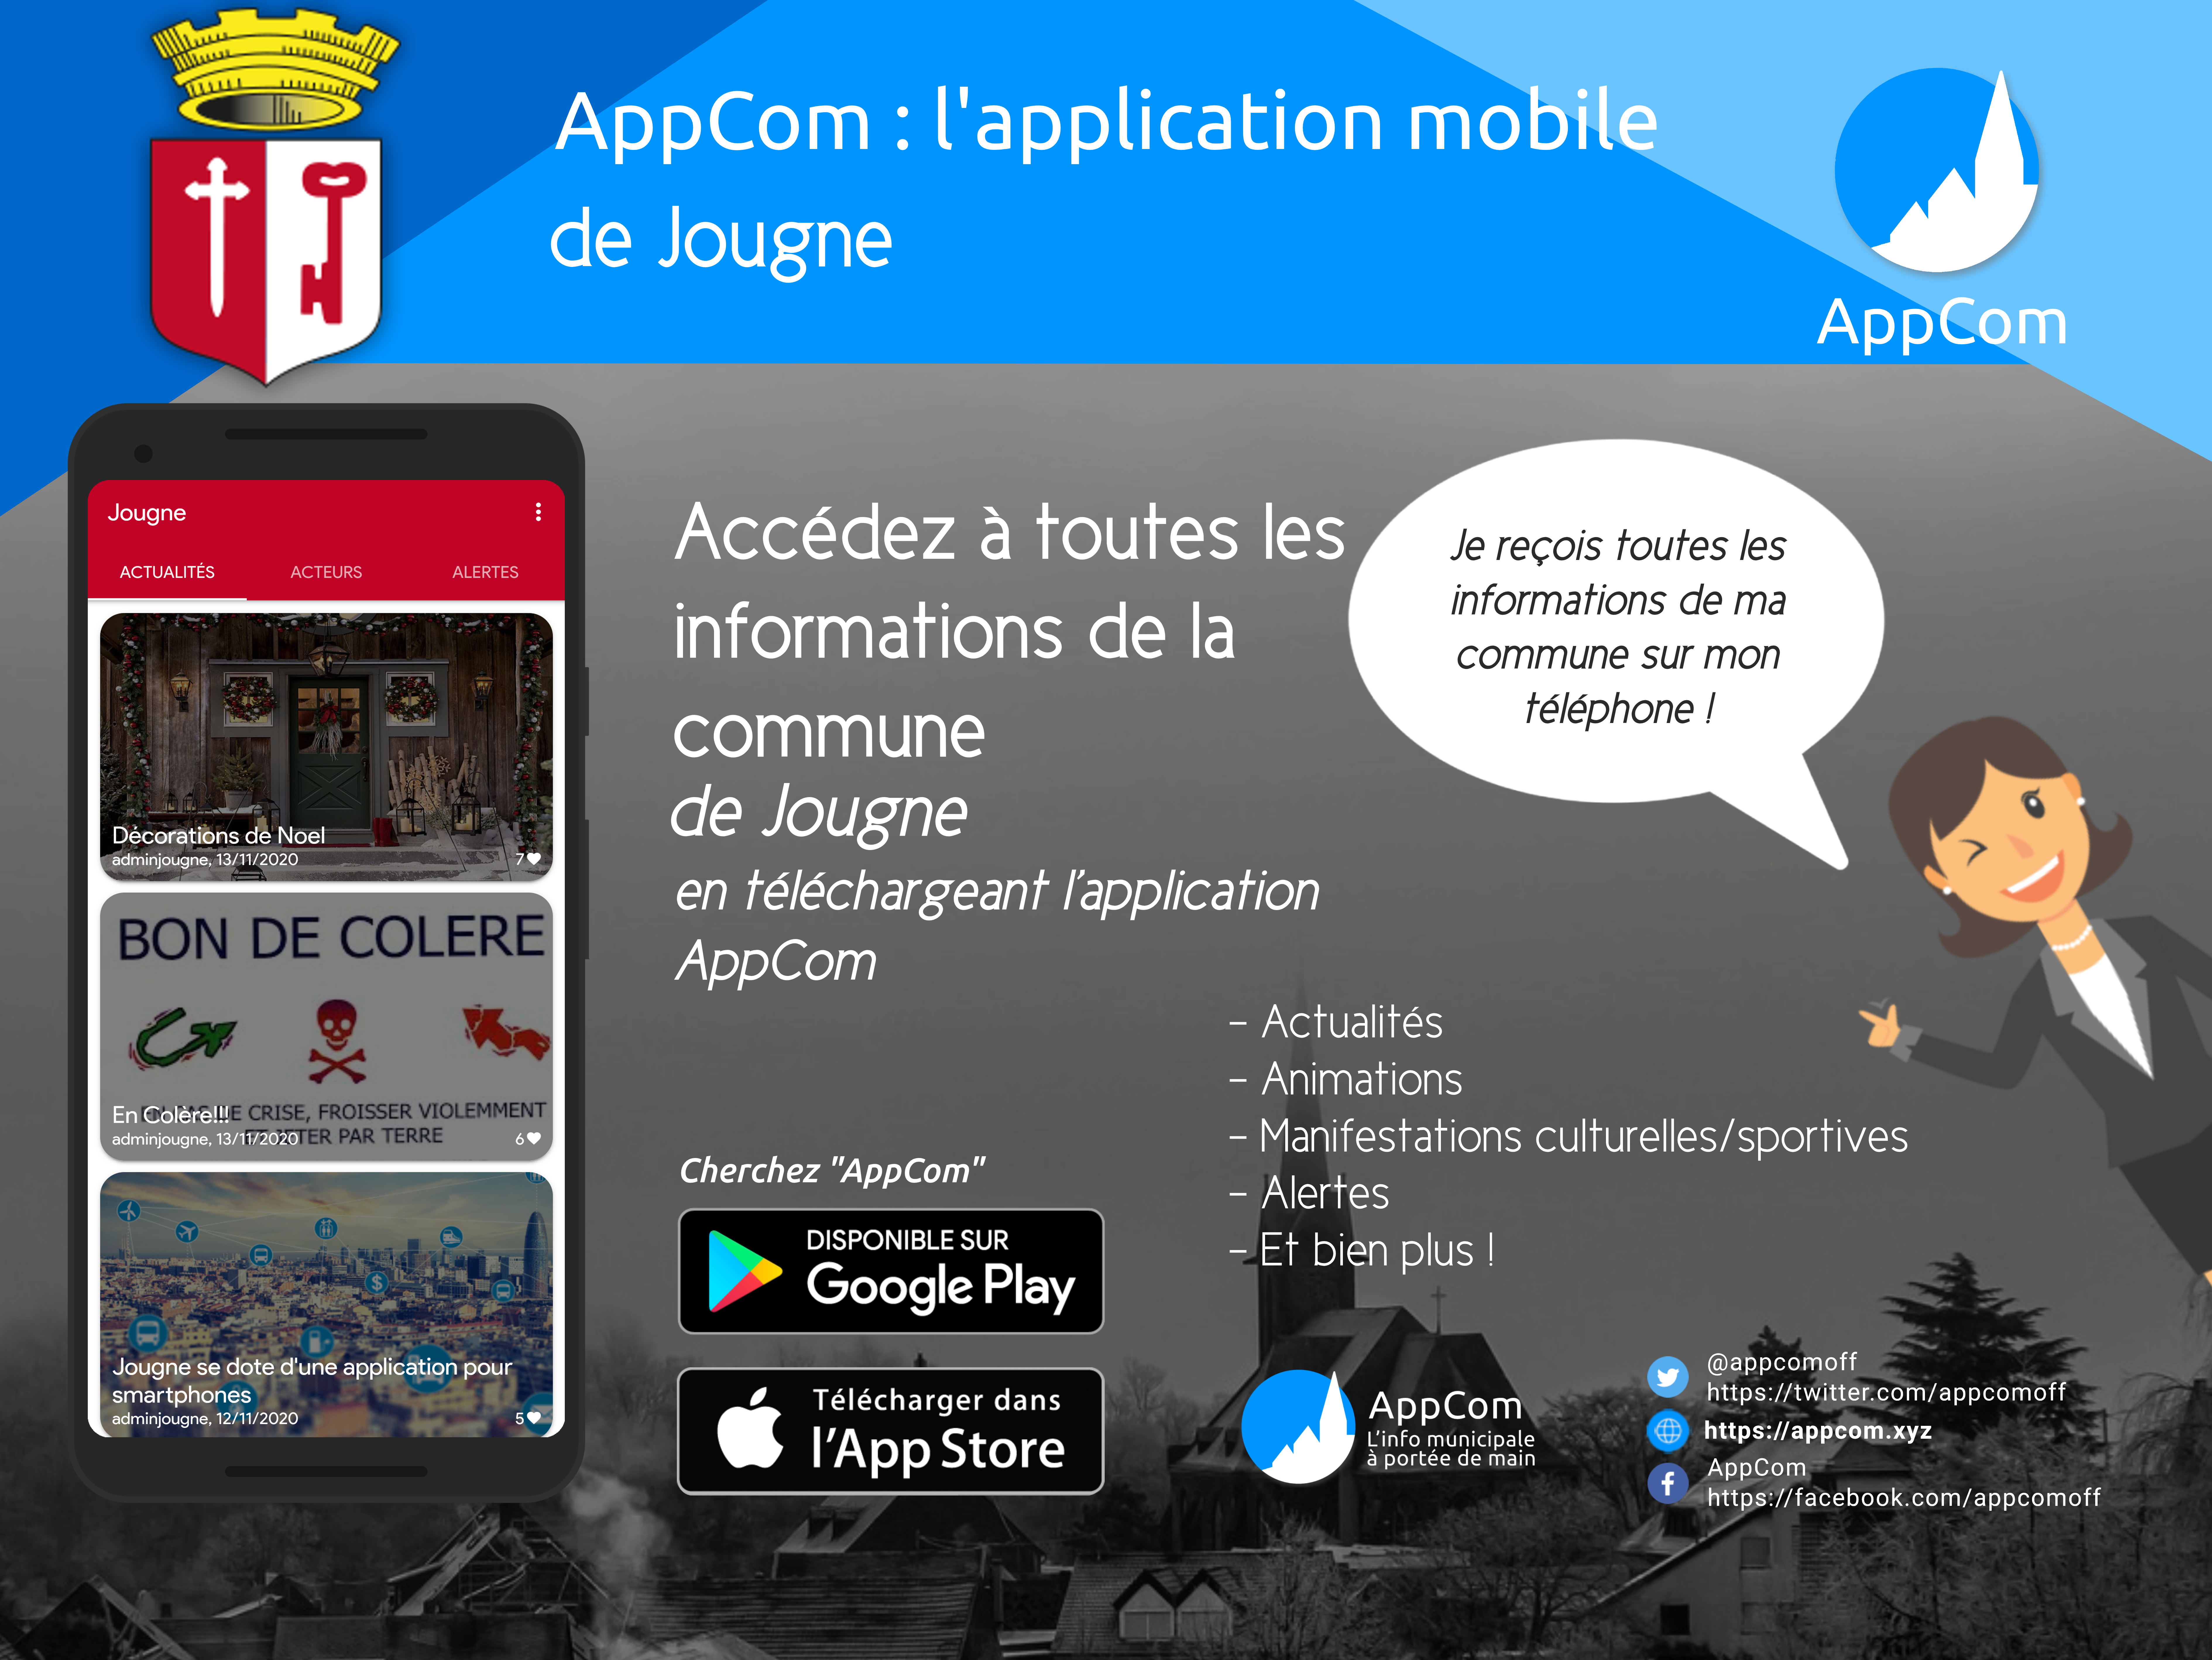 AppCom : Application mobile de Jougne